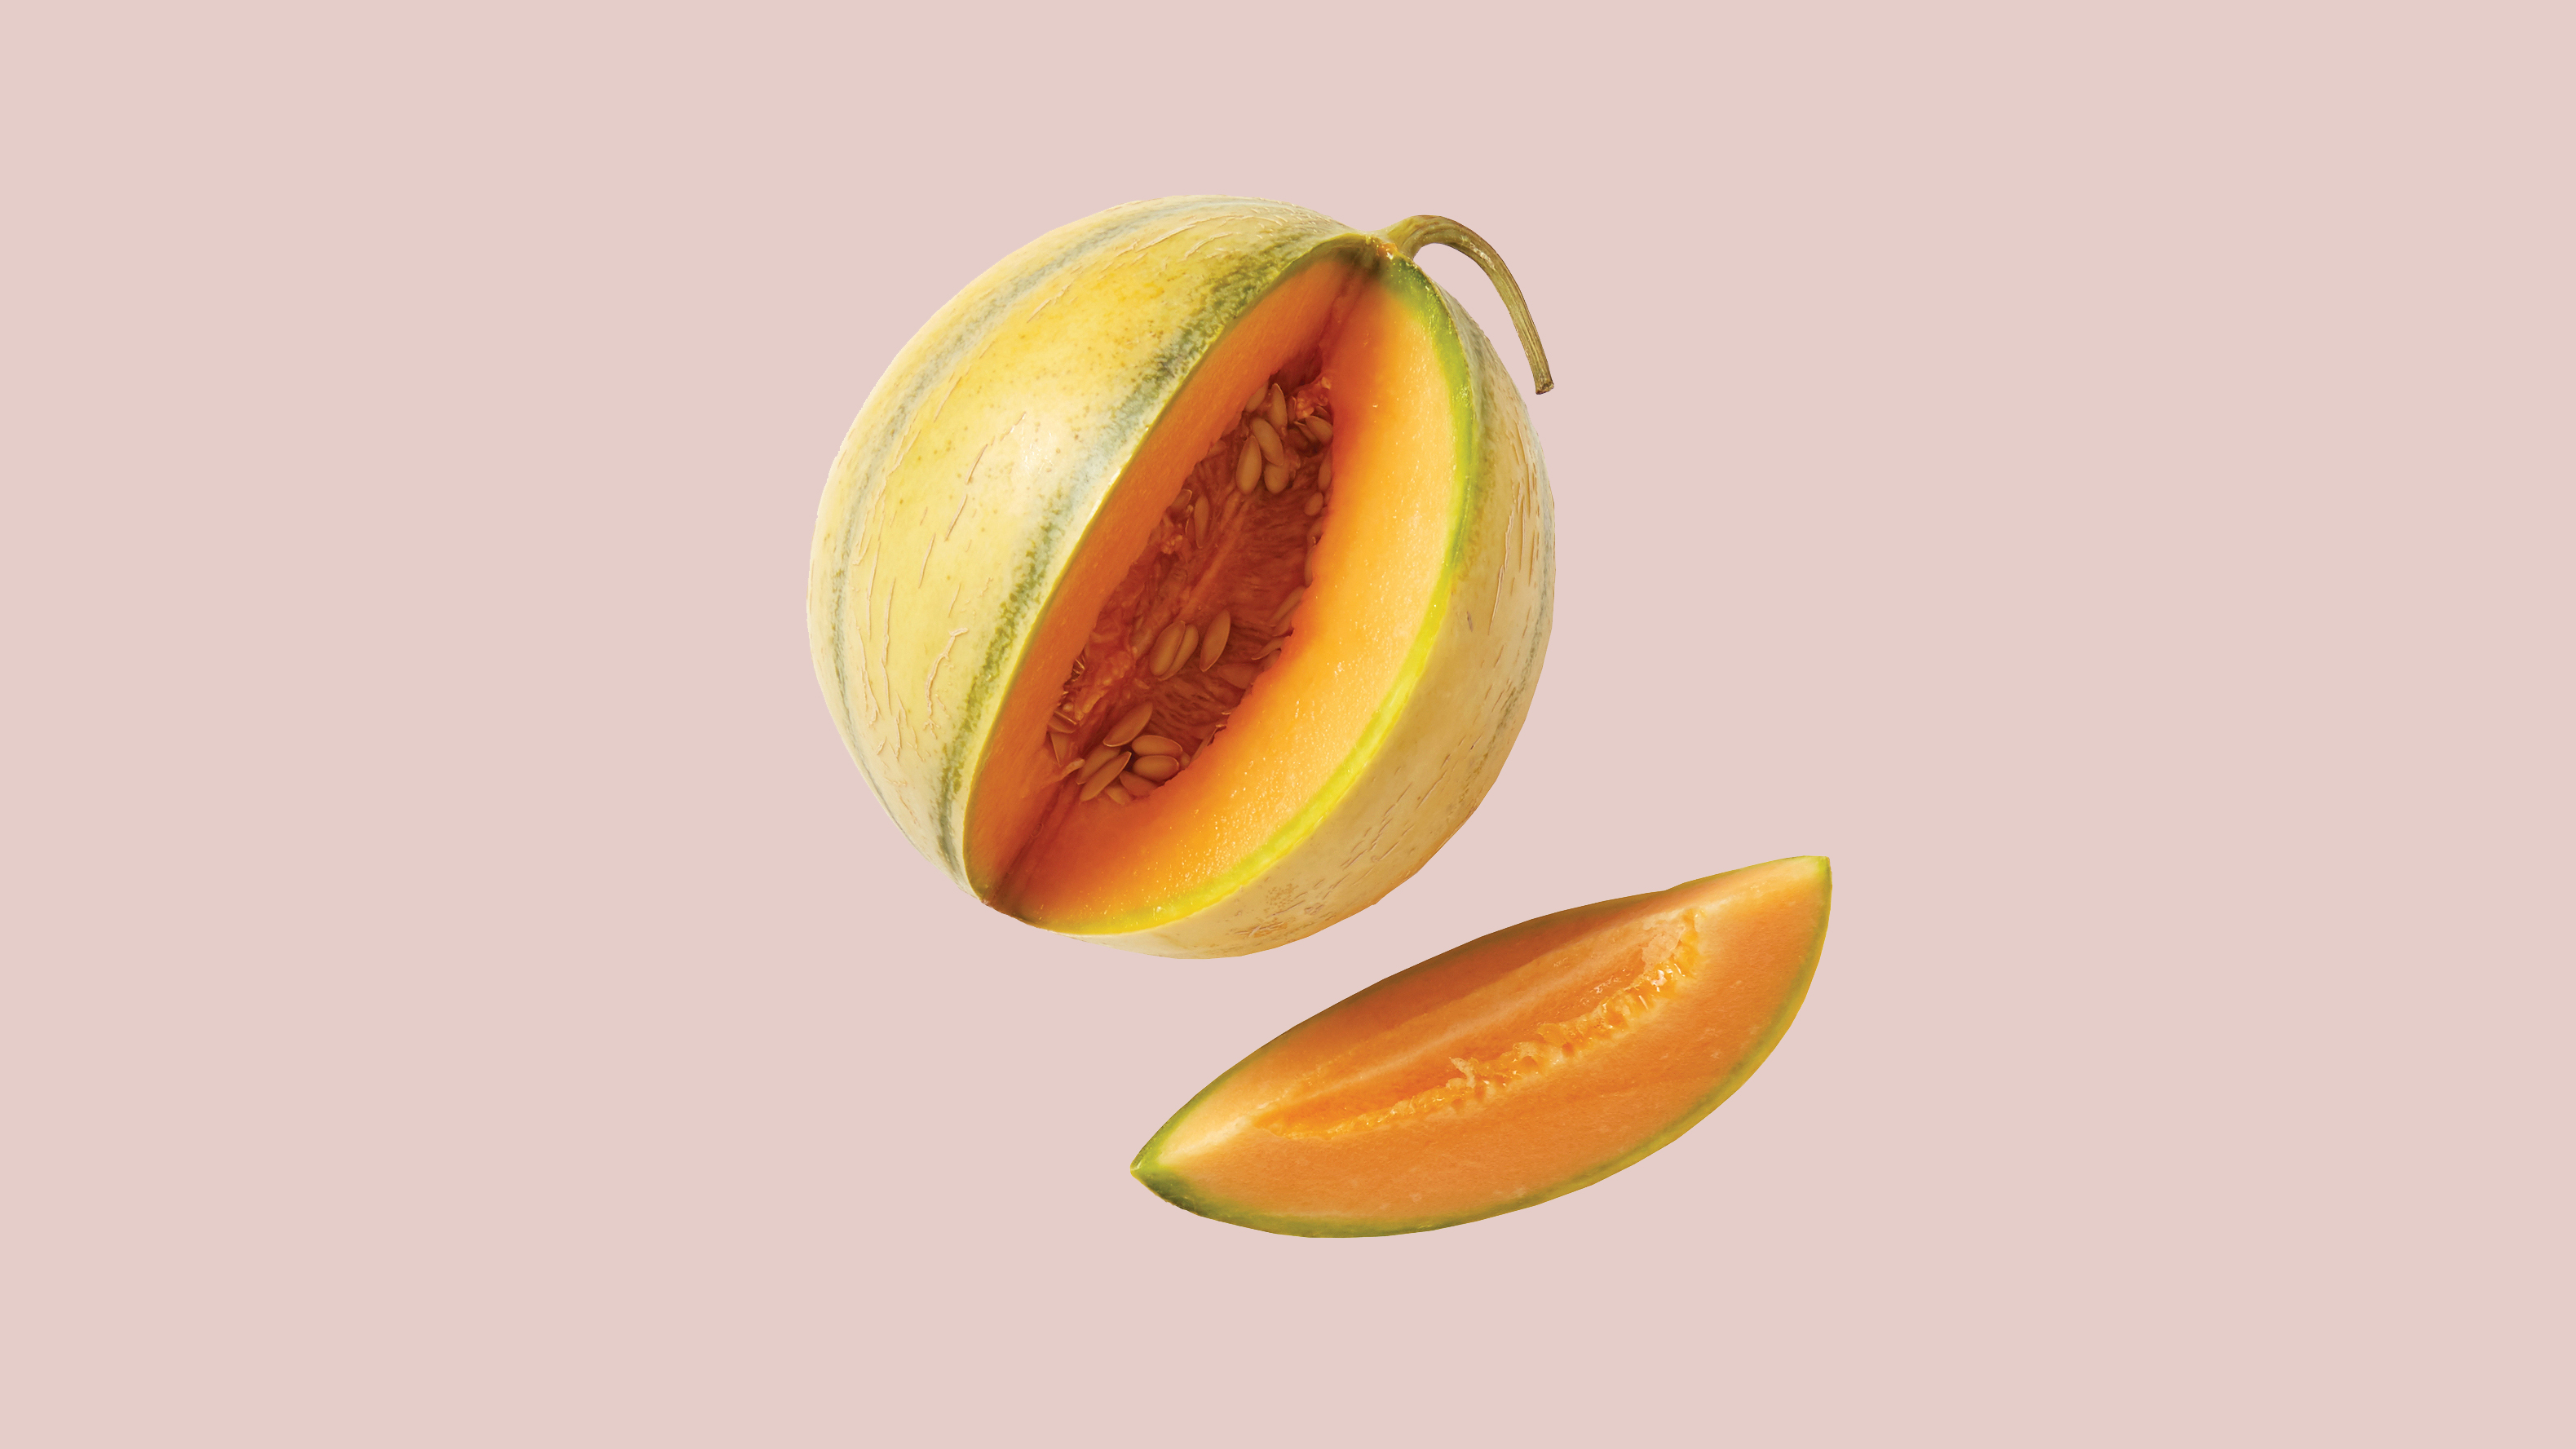 How To Choose A Ripe Melon Martha Stewart Luckily for you, researchers from the university of california. how to choose a ripe melon martha stewart